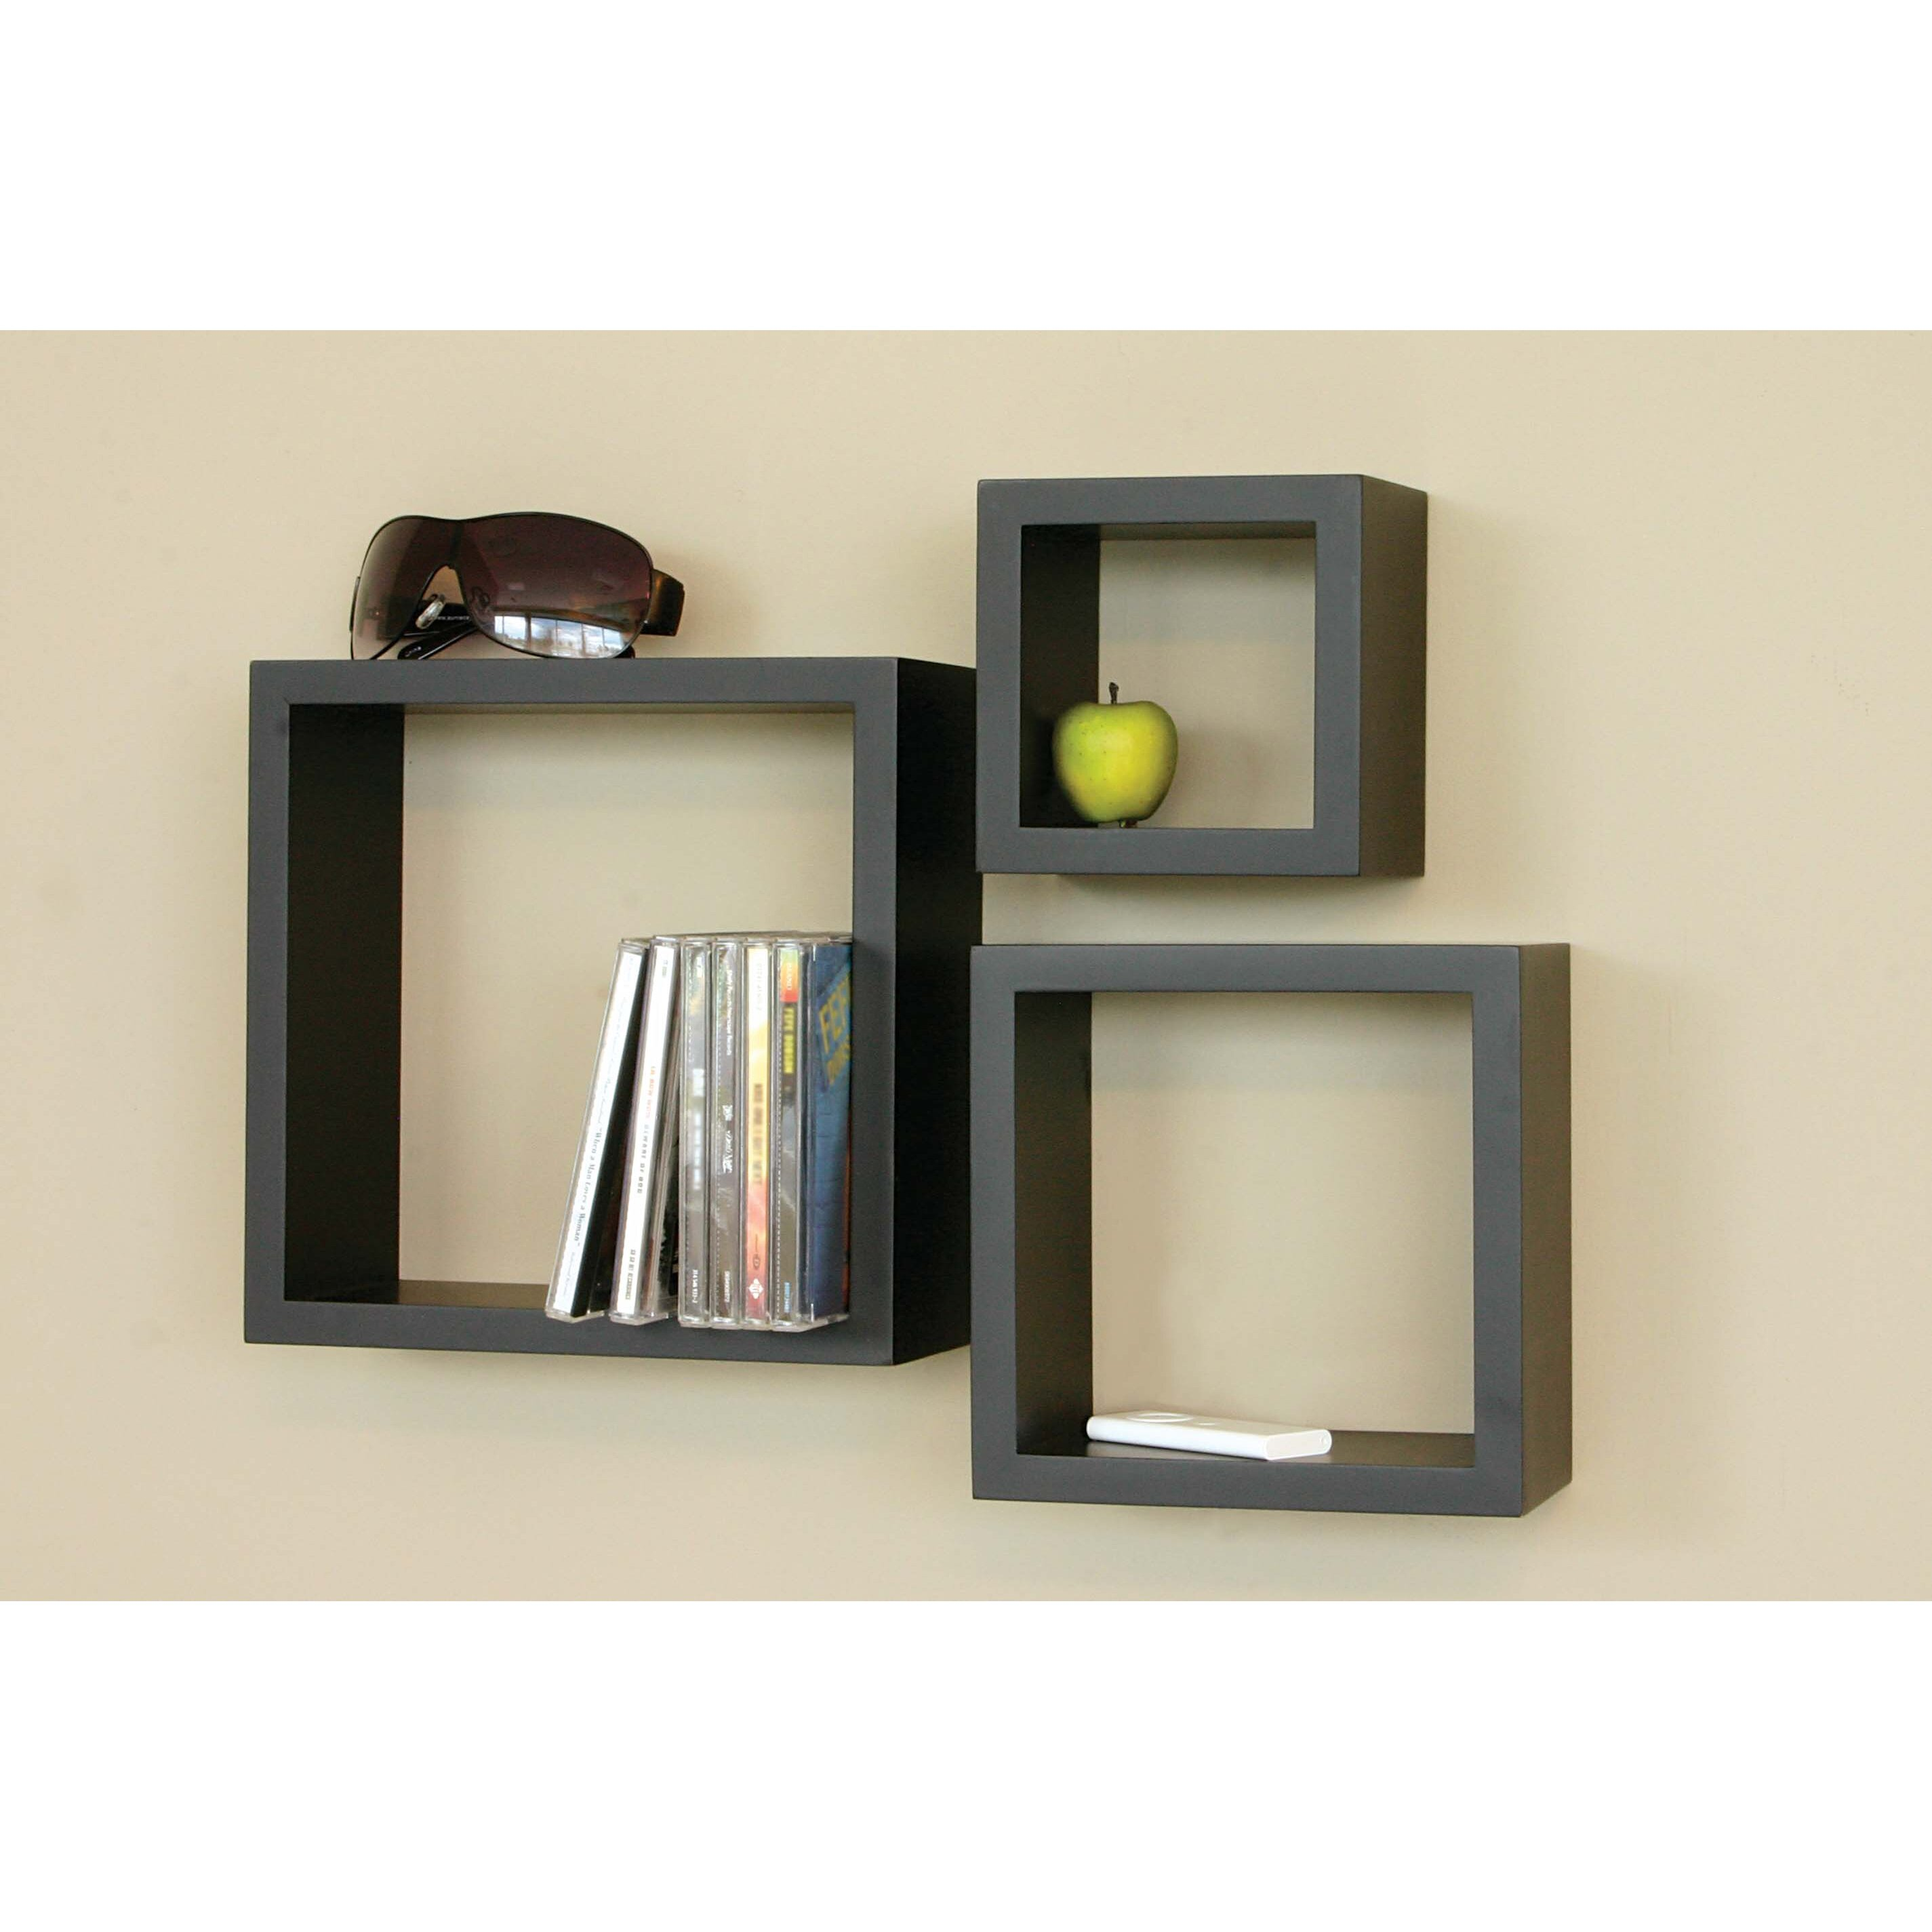 Modern Wall Mounted Bookshelves simple shelf system that offers a lot of room for books 20